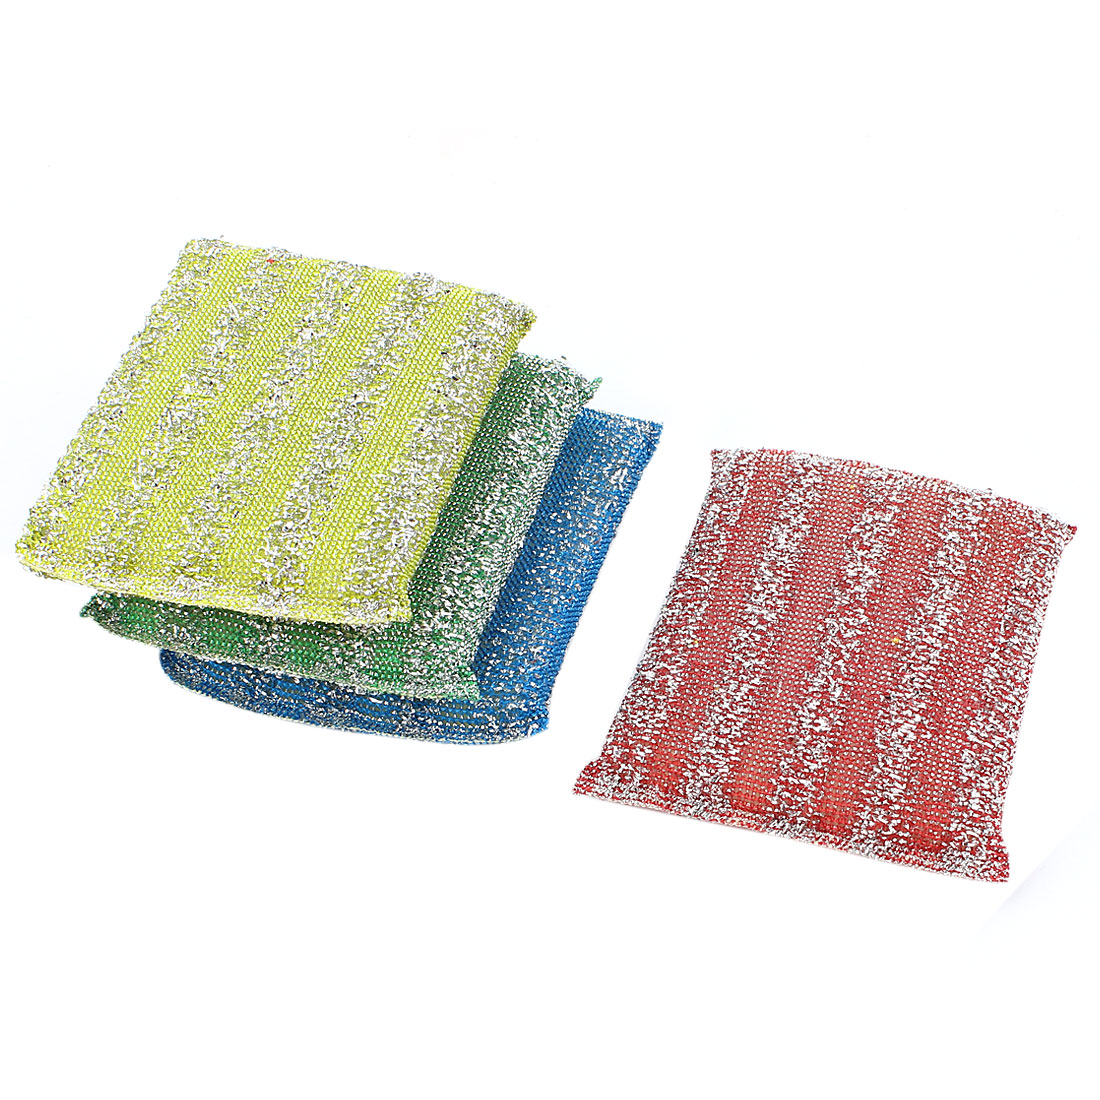 Home Kitchen Bowl Dish Pot Wash Clean Scrub Sponge Cleaning Pads Multicolor 4pcs